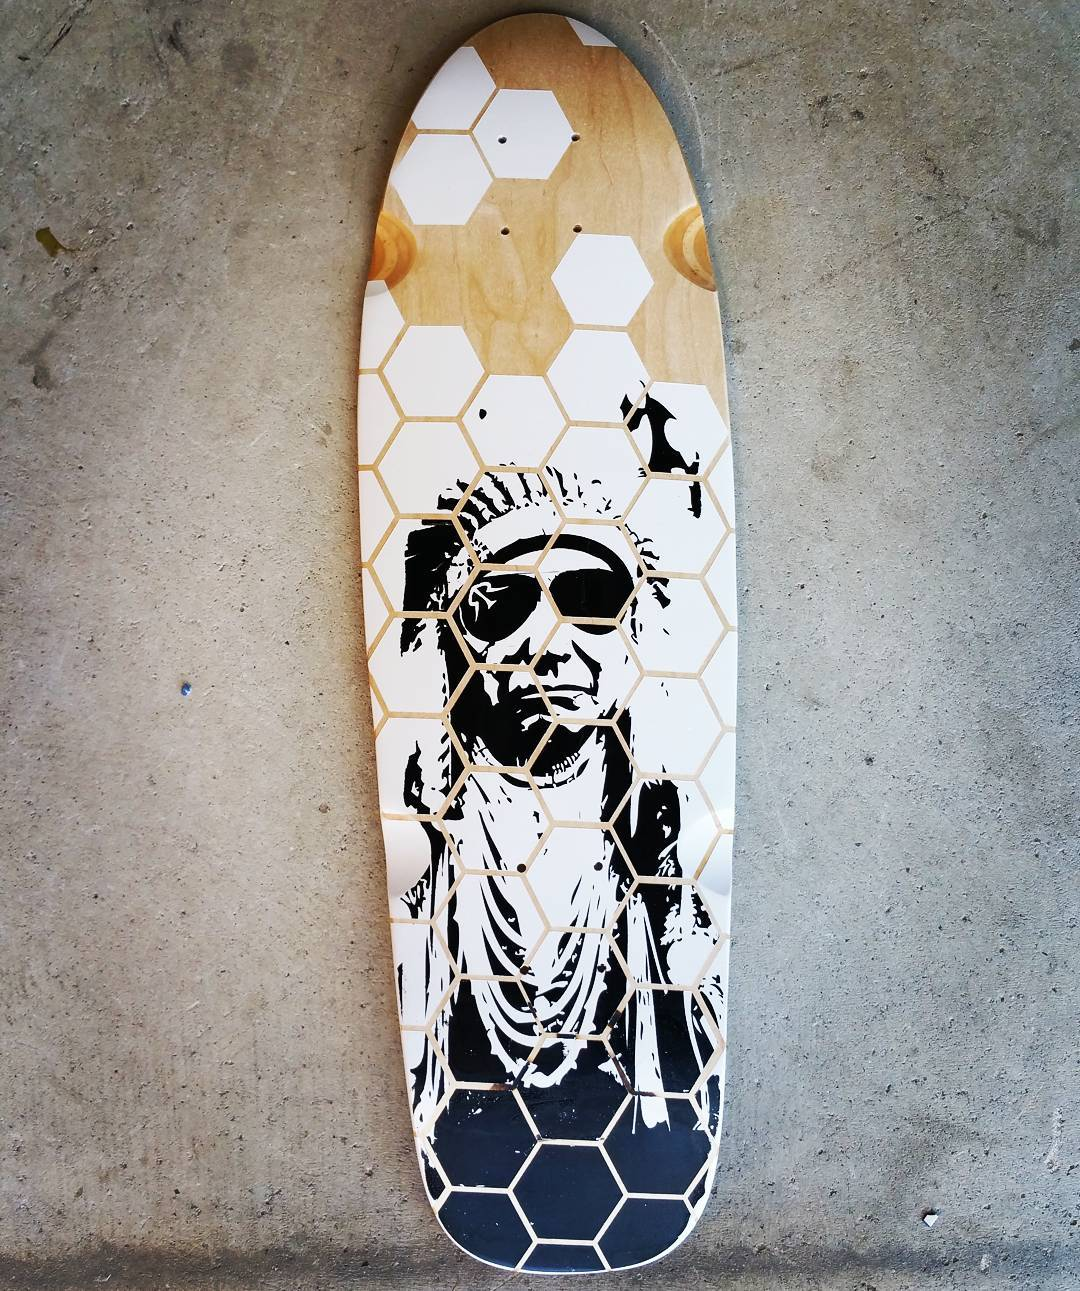 A new take on the Indian Chief. #hexagon #longboard #kalayaan #roadrashboardco #custom